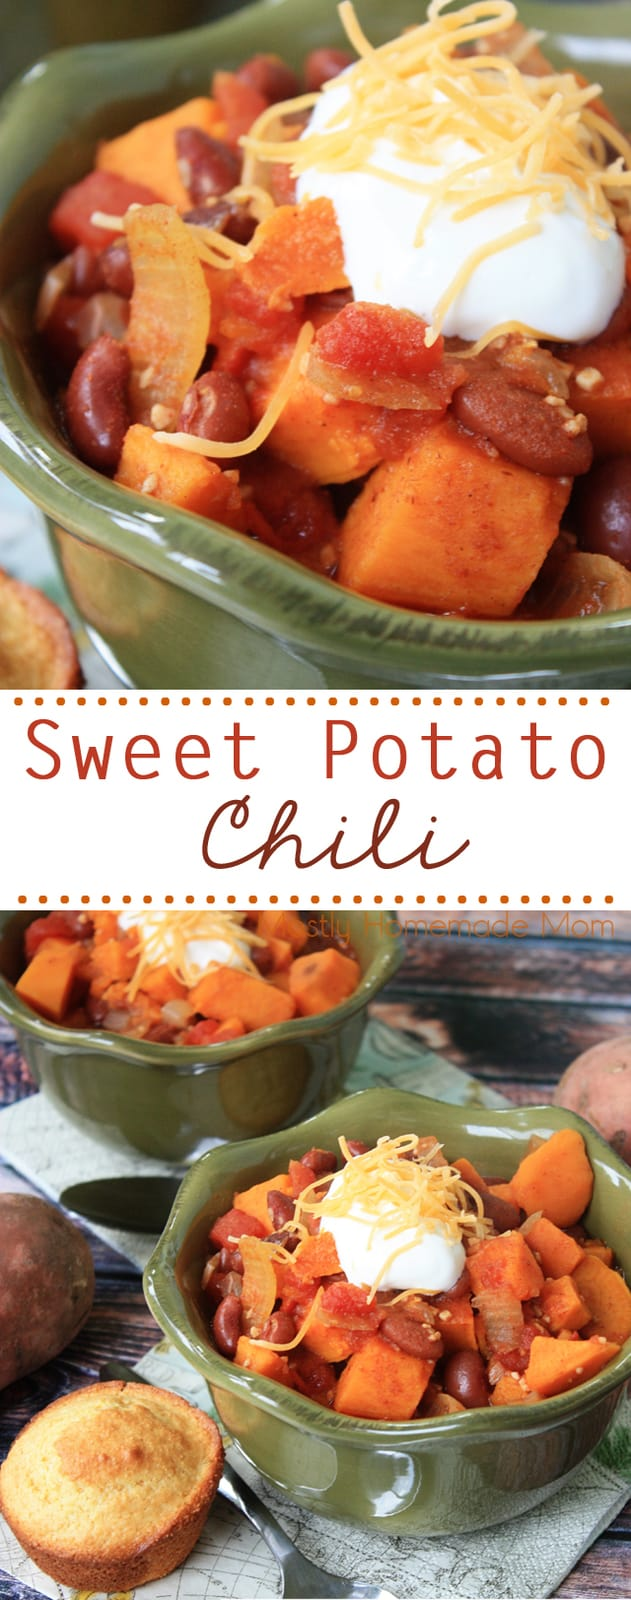 Crockpot Sweet Potato Chili is the perfect meatless chili recipe! Diced sweet potatoes, tomatoes, beans, and spices - be sure to serve this with some yummy cornbread! #vegetarian #paleo #recipe #chili #crockpot #slowcooker